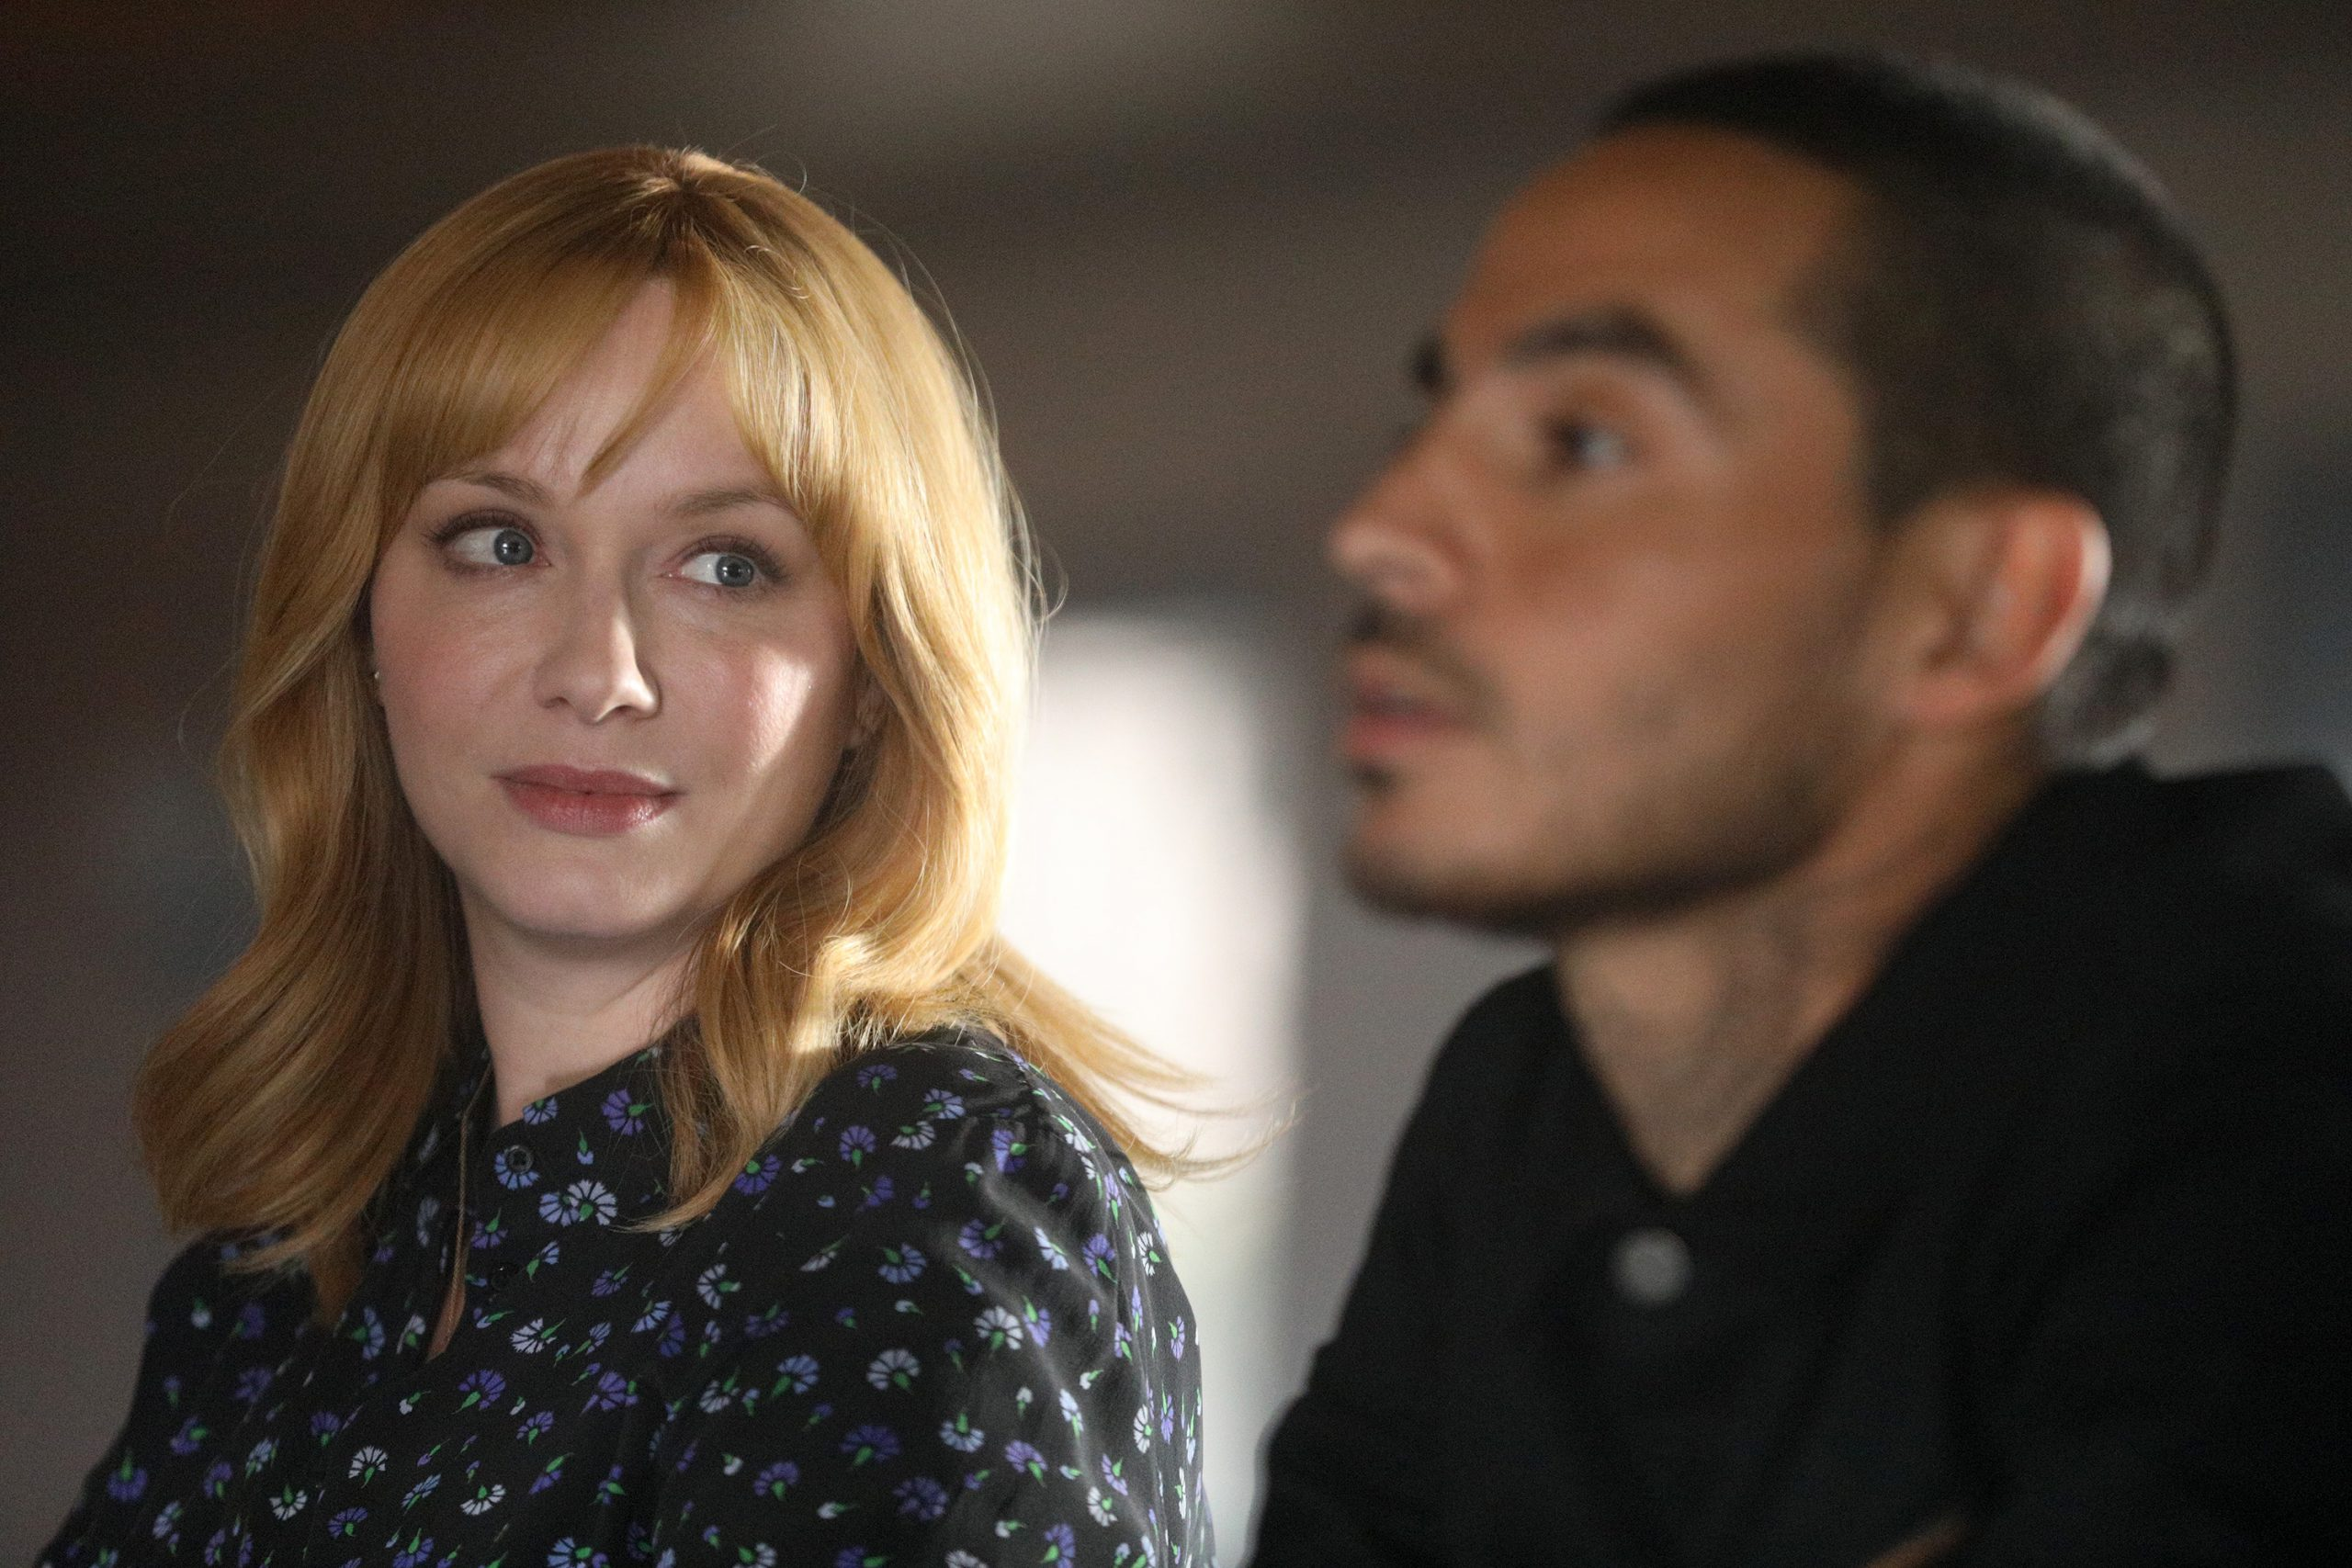 Christina Hendricks and Manny Montana filming a scene from 'Good Girls' as Beth and Rio